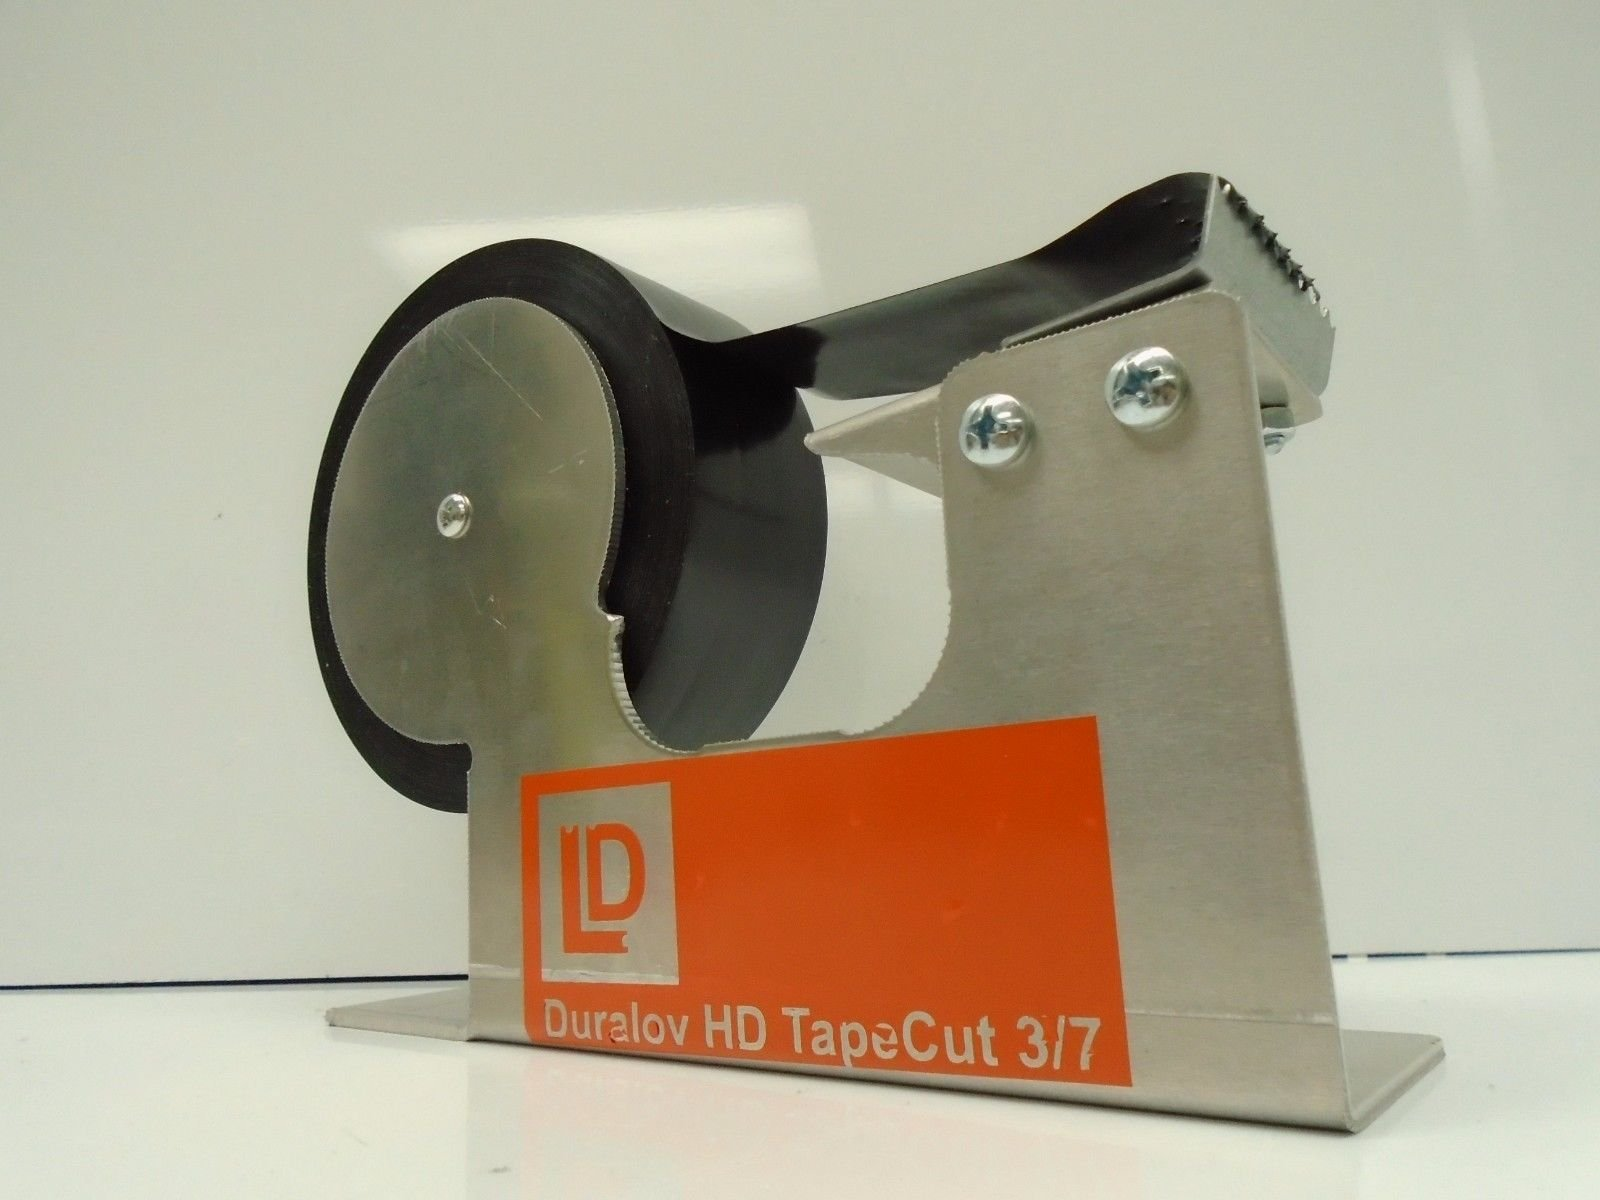 Packing Tape heavy duty industrial grade dispenser for desktop installation clamp 1 to 3 inches width